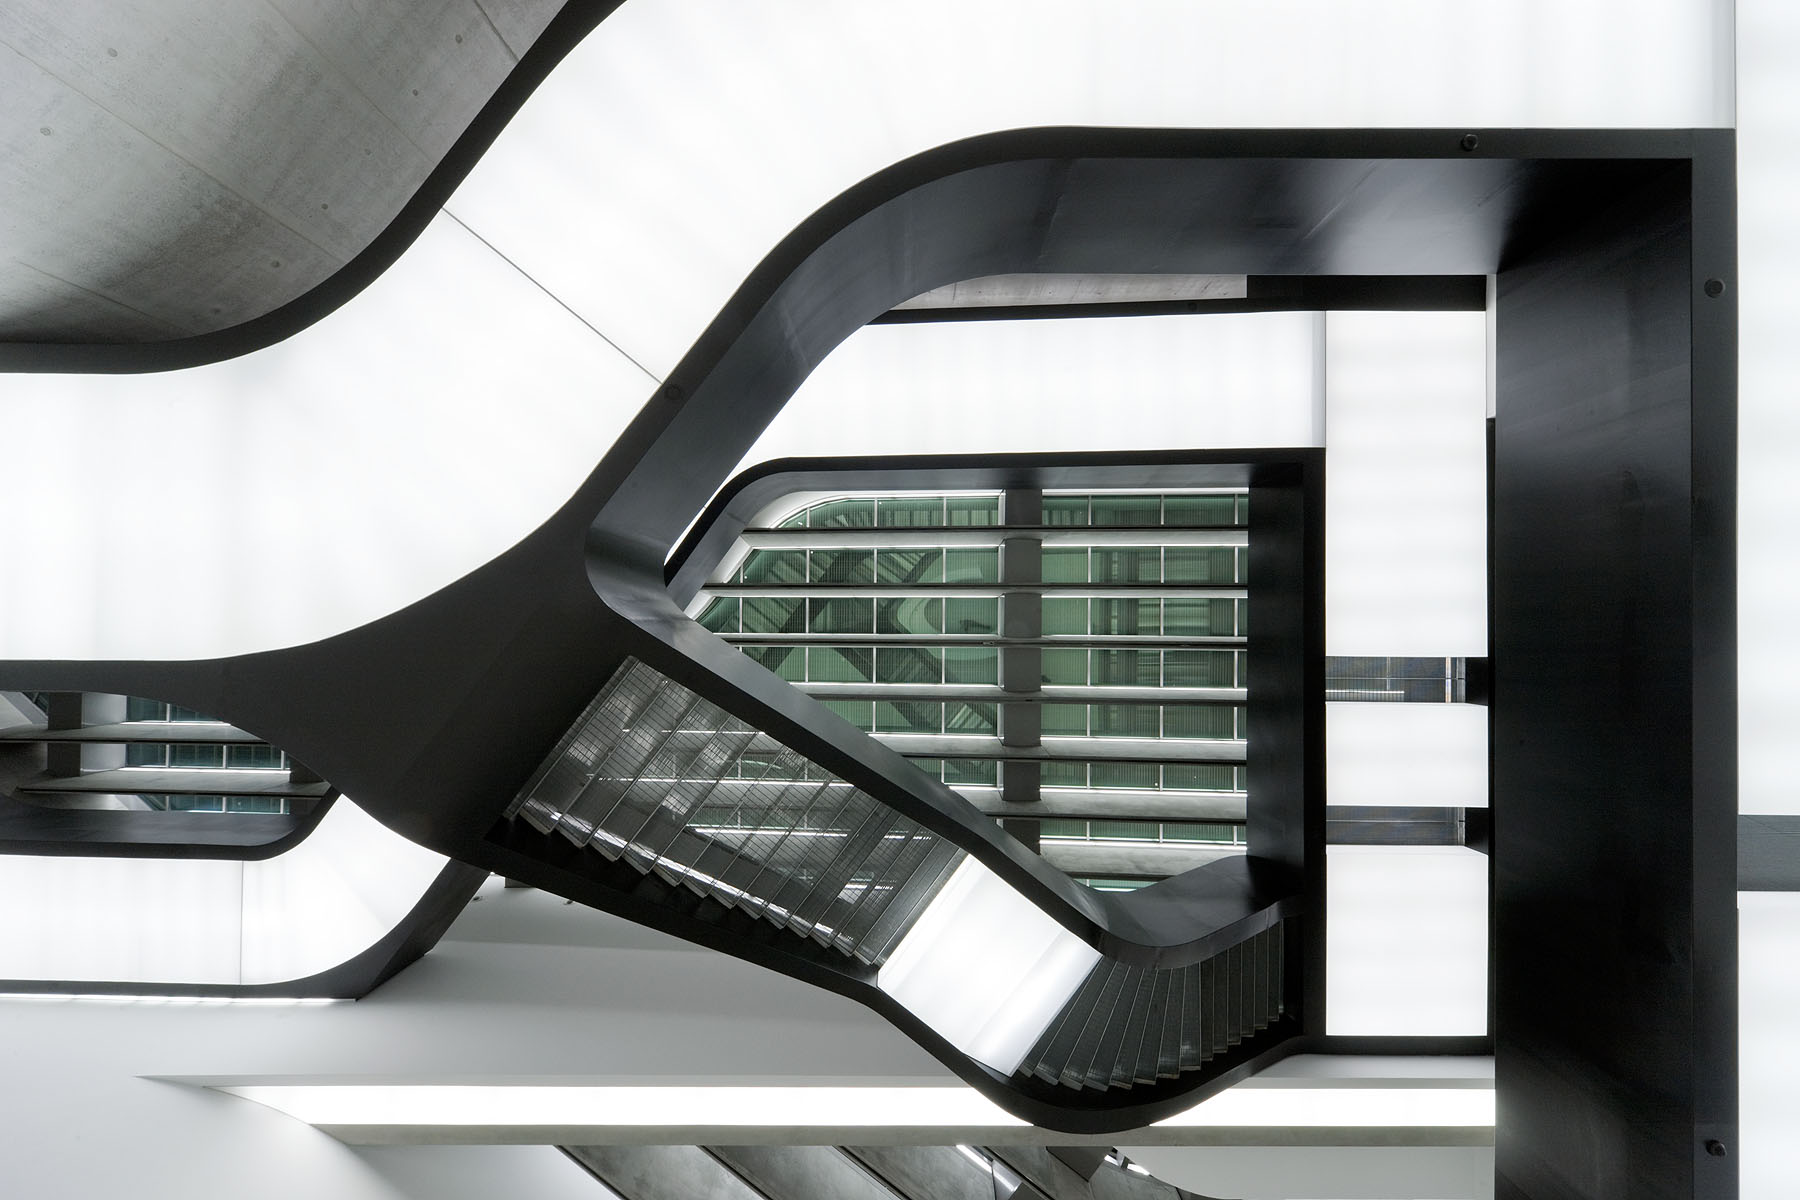 Gallery stairs of Zaha Hadid's MAXXI- National Museum of XXI Century Arts